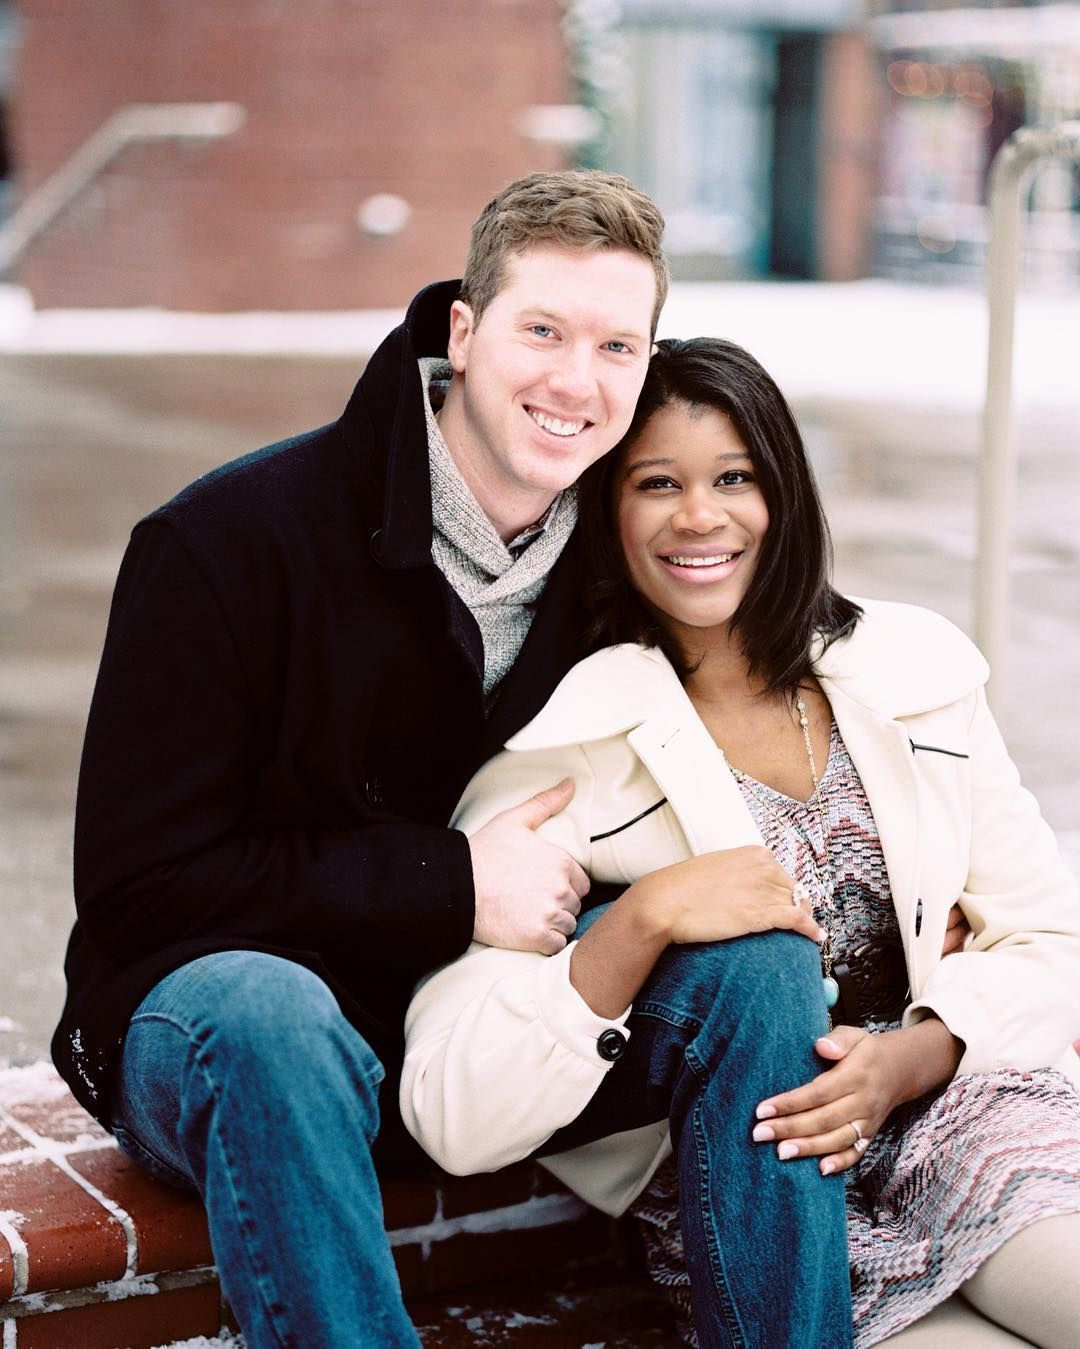 Interracial Dating In Tennessee